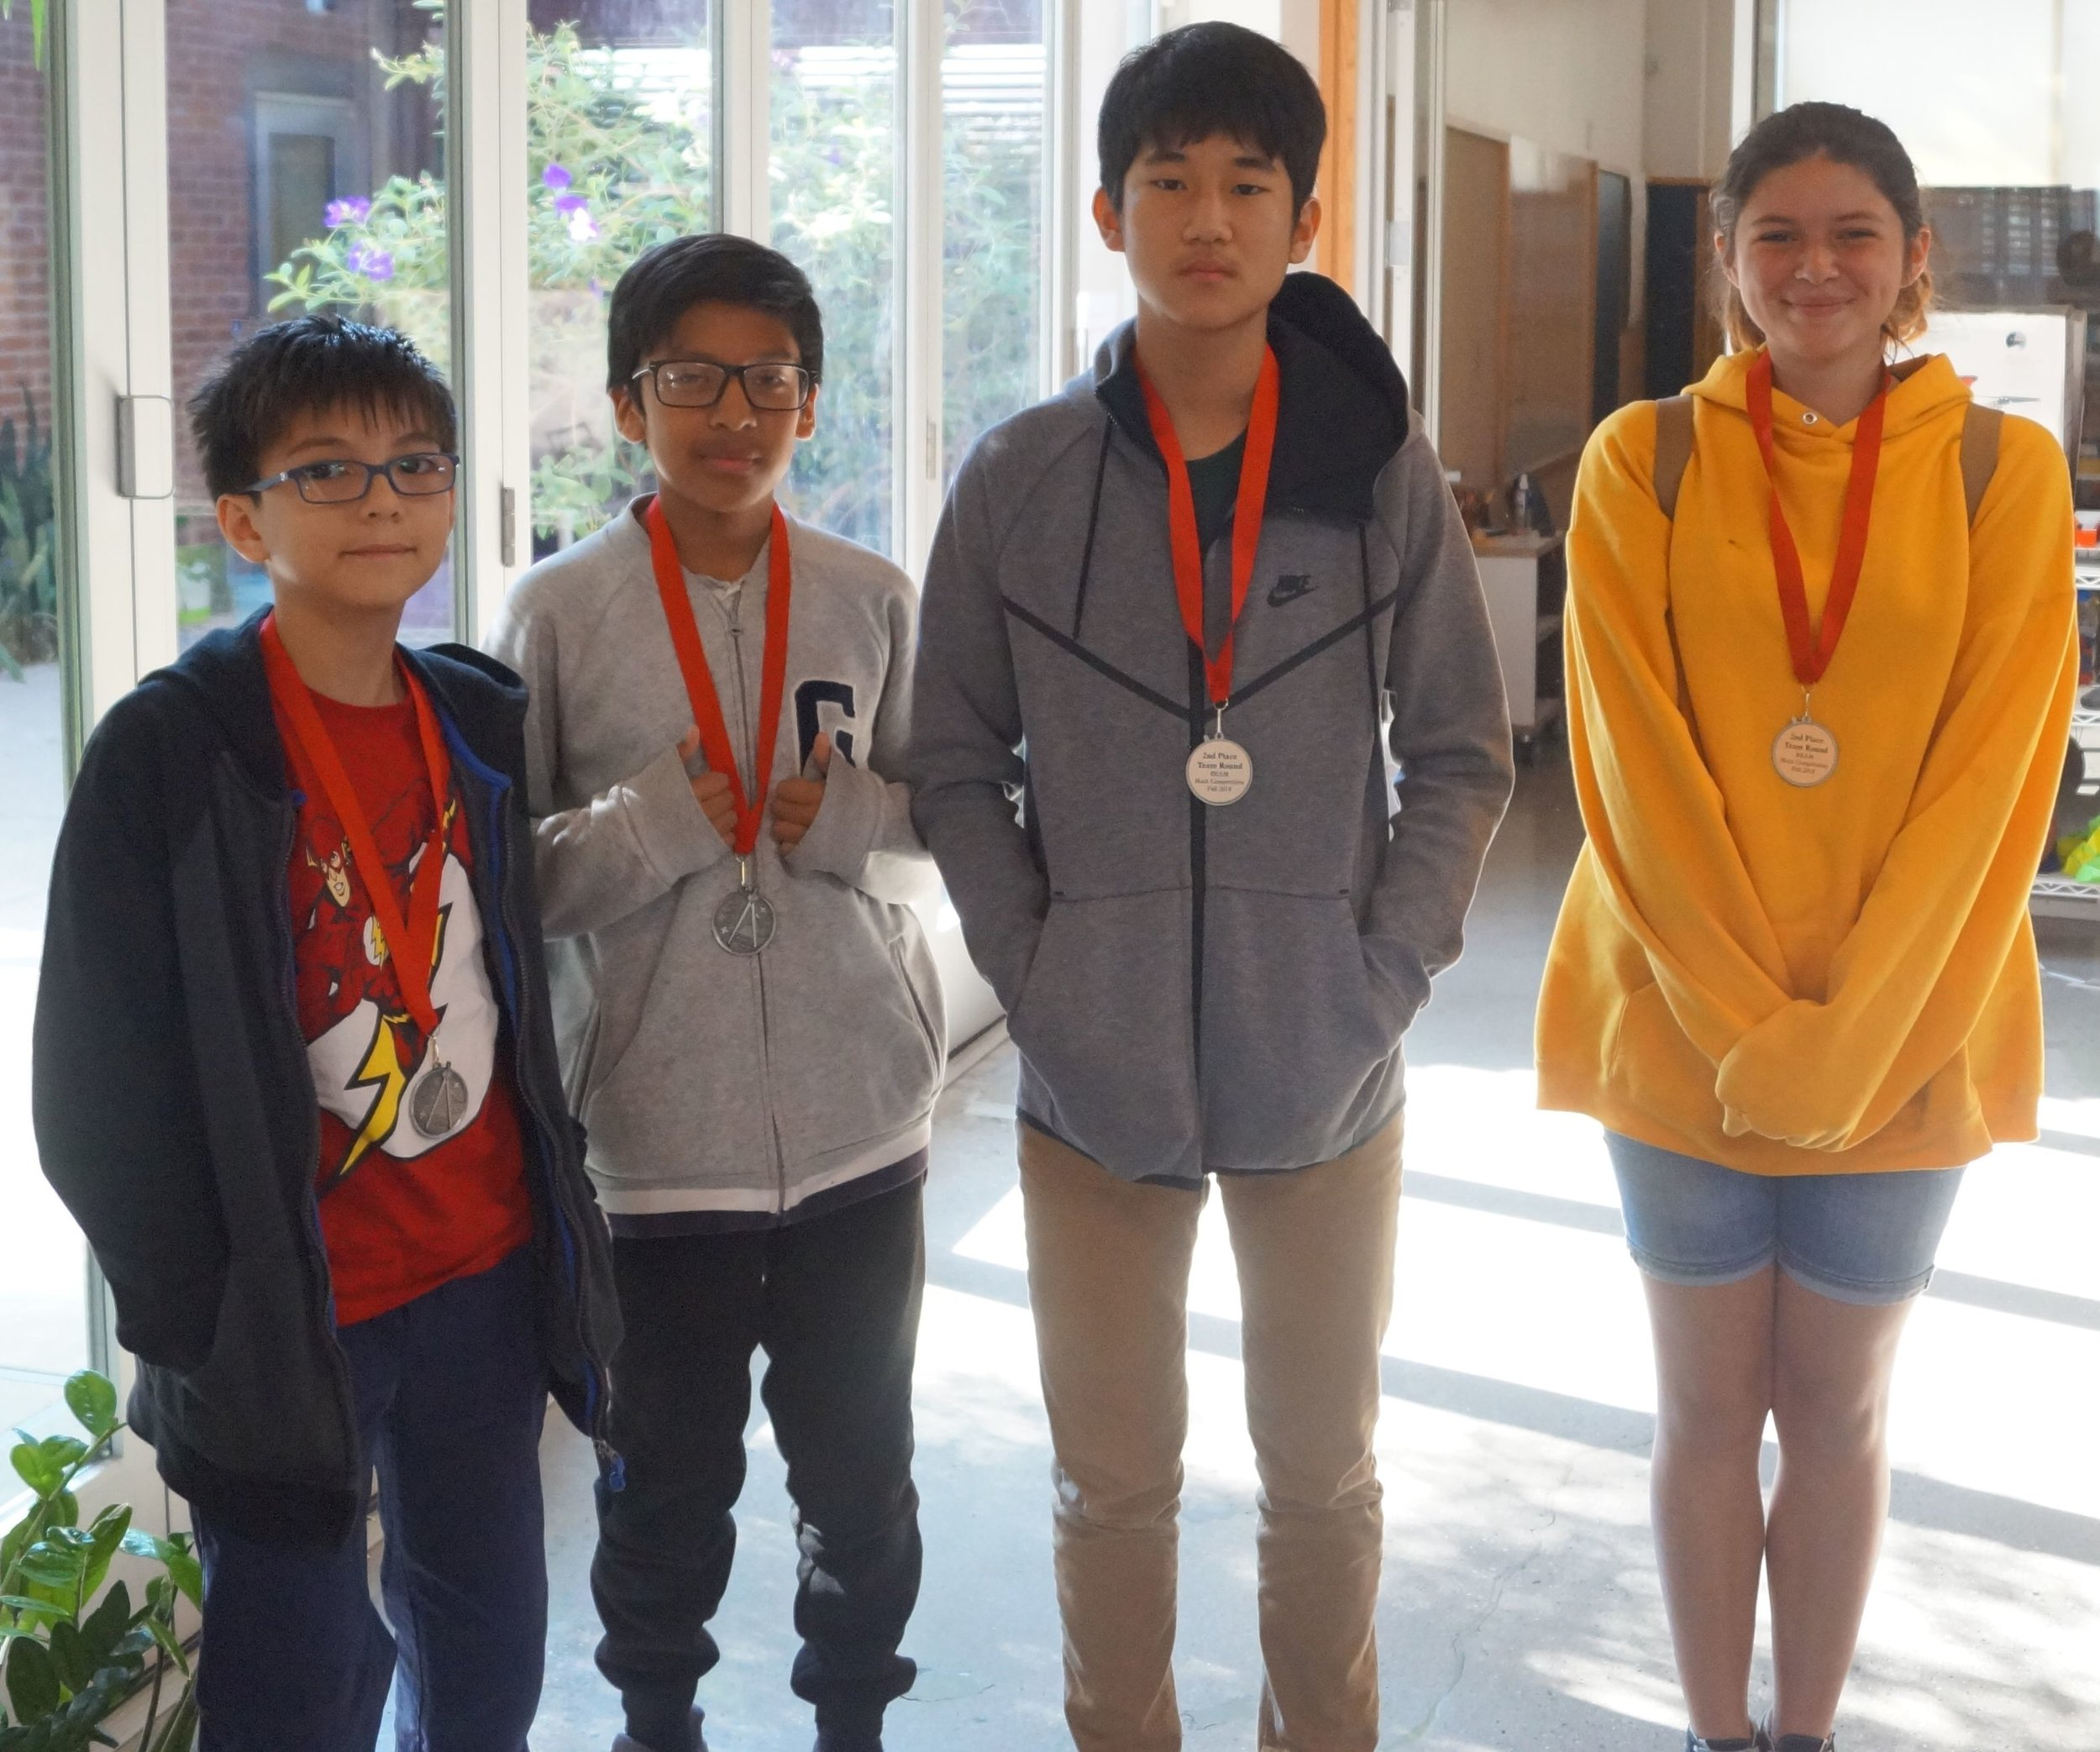 From left to right, Jipper, Abraham, Joshua, and Cherokee, won second place in the team round representing UCLA Community School. Abraham and Cherokee are BEAM alum.